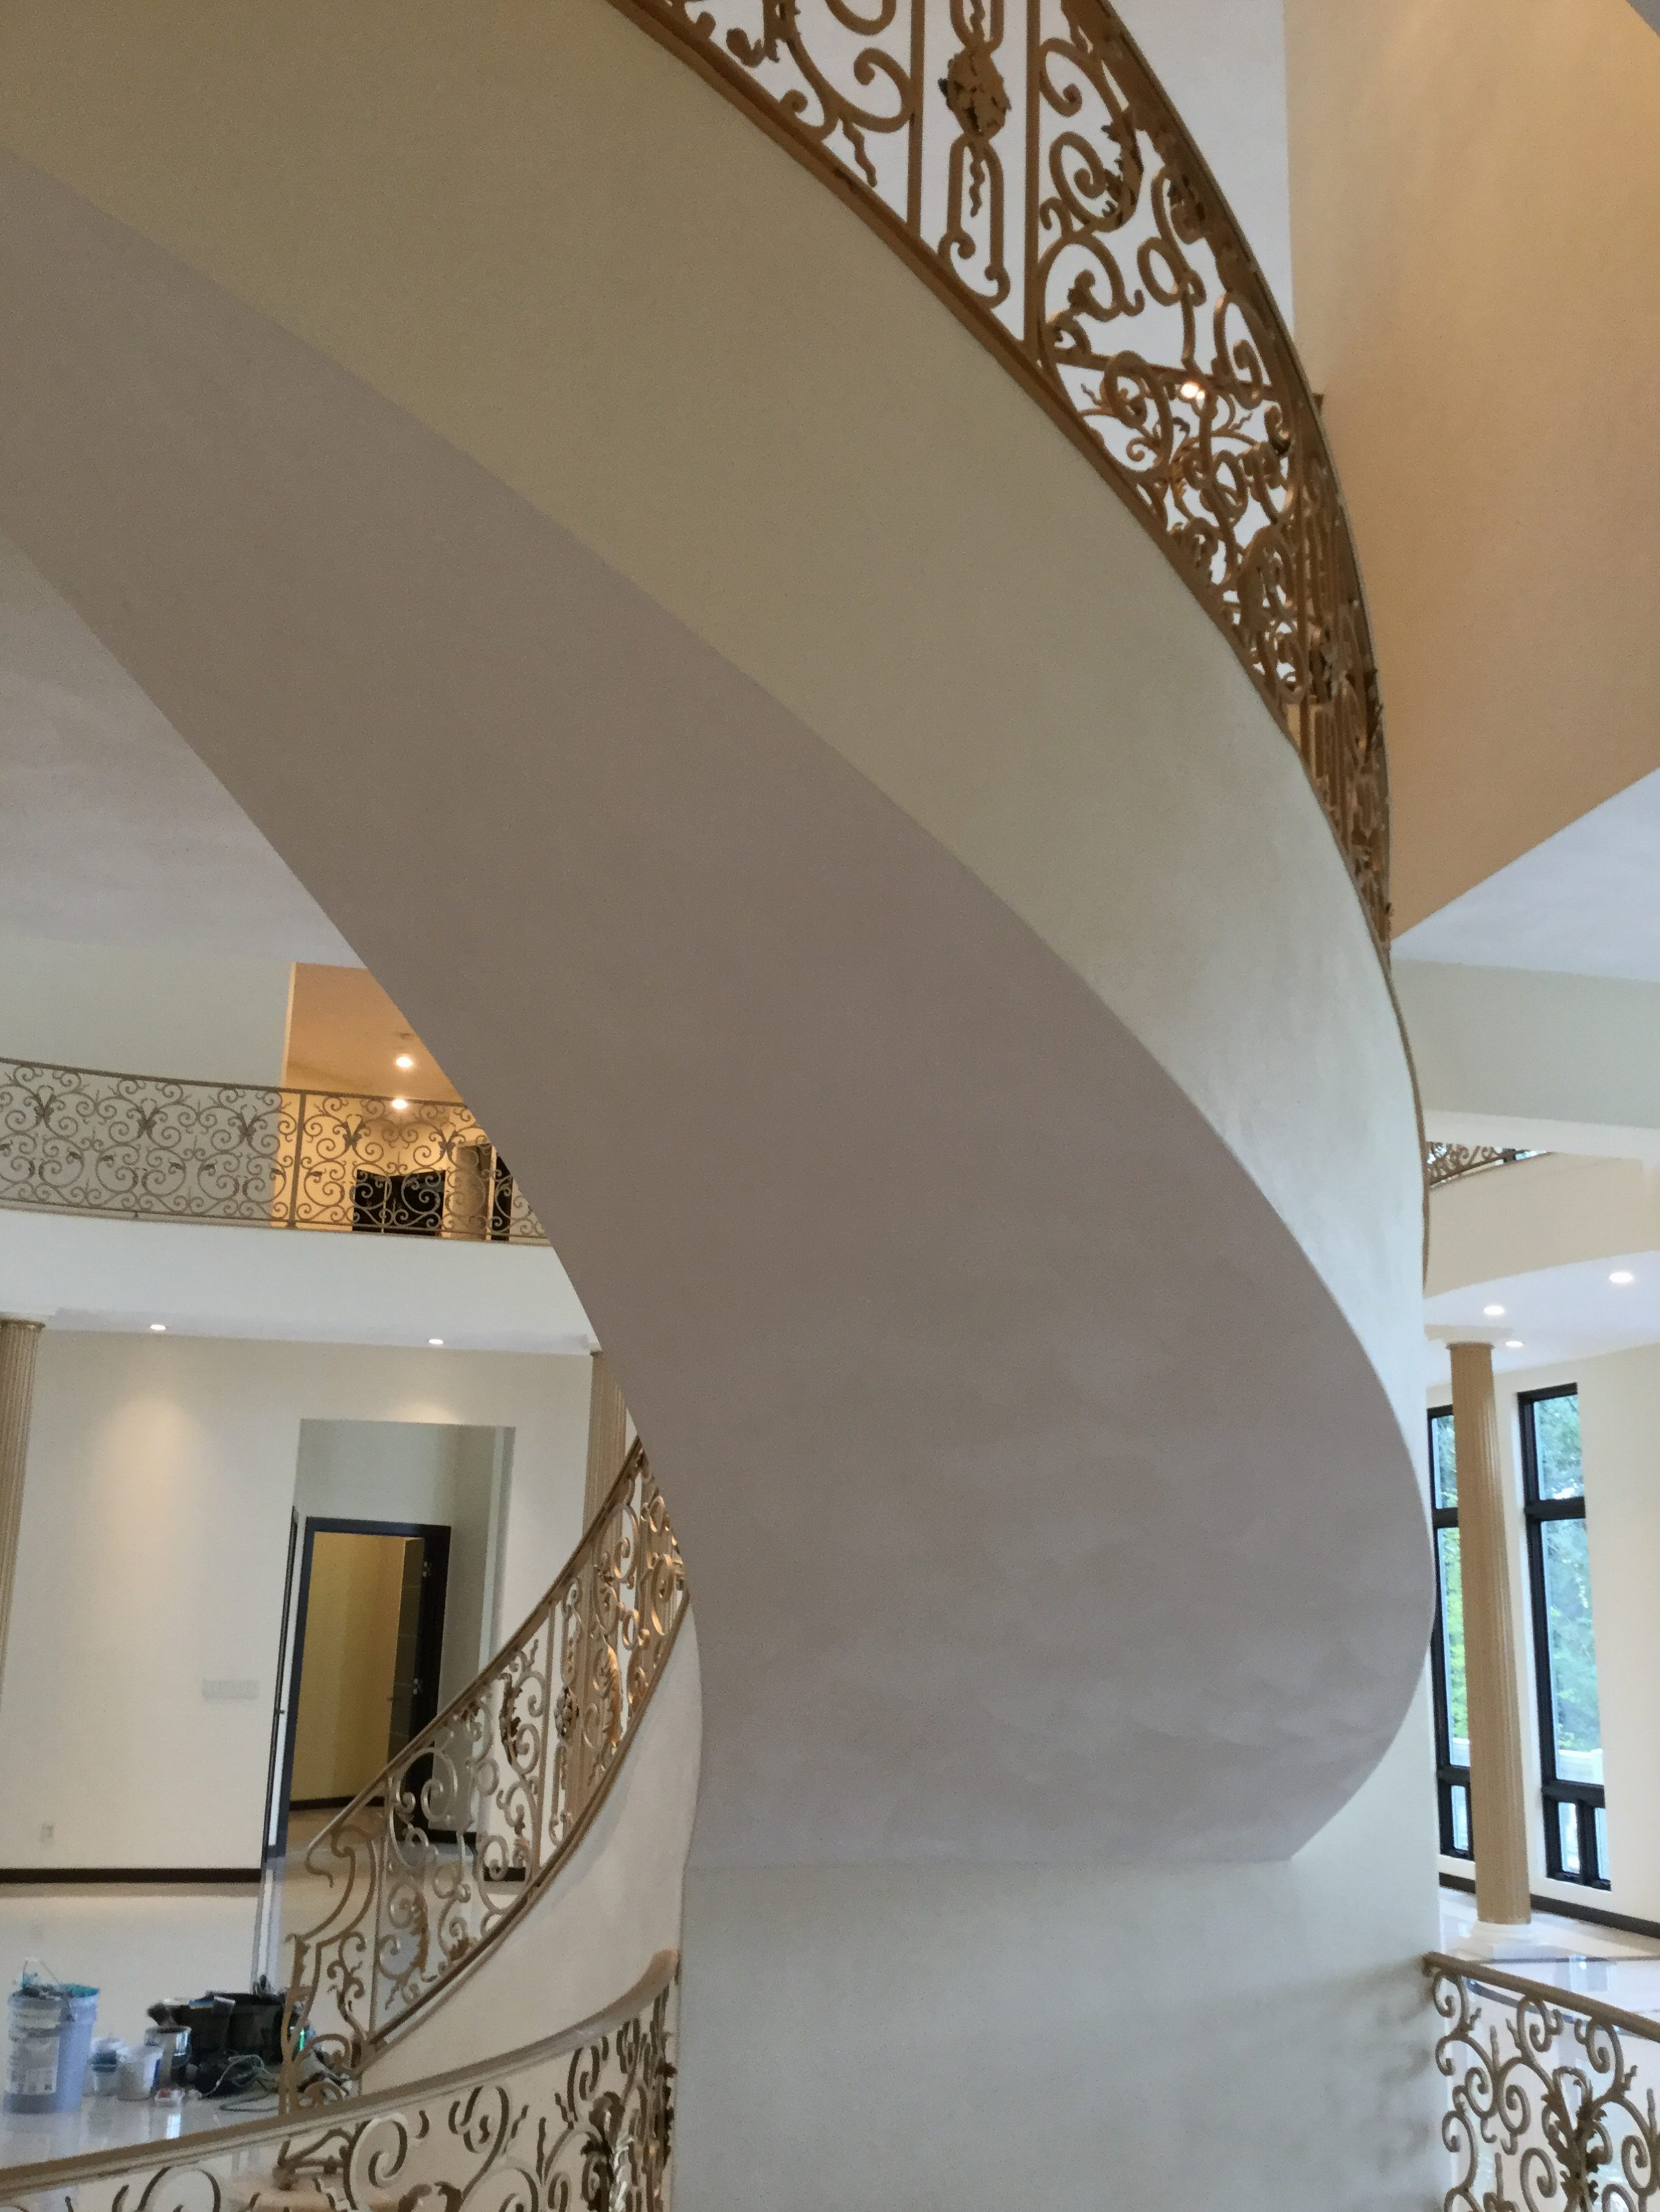 Dallas Plastering | Specializing in Plaster Repair and